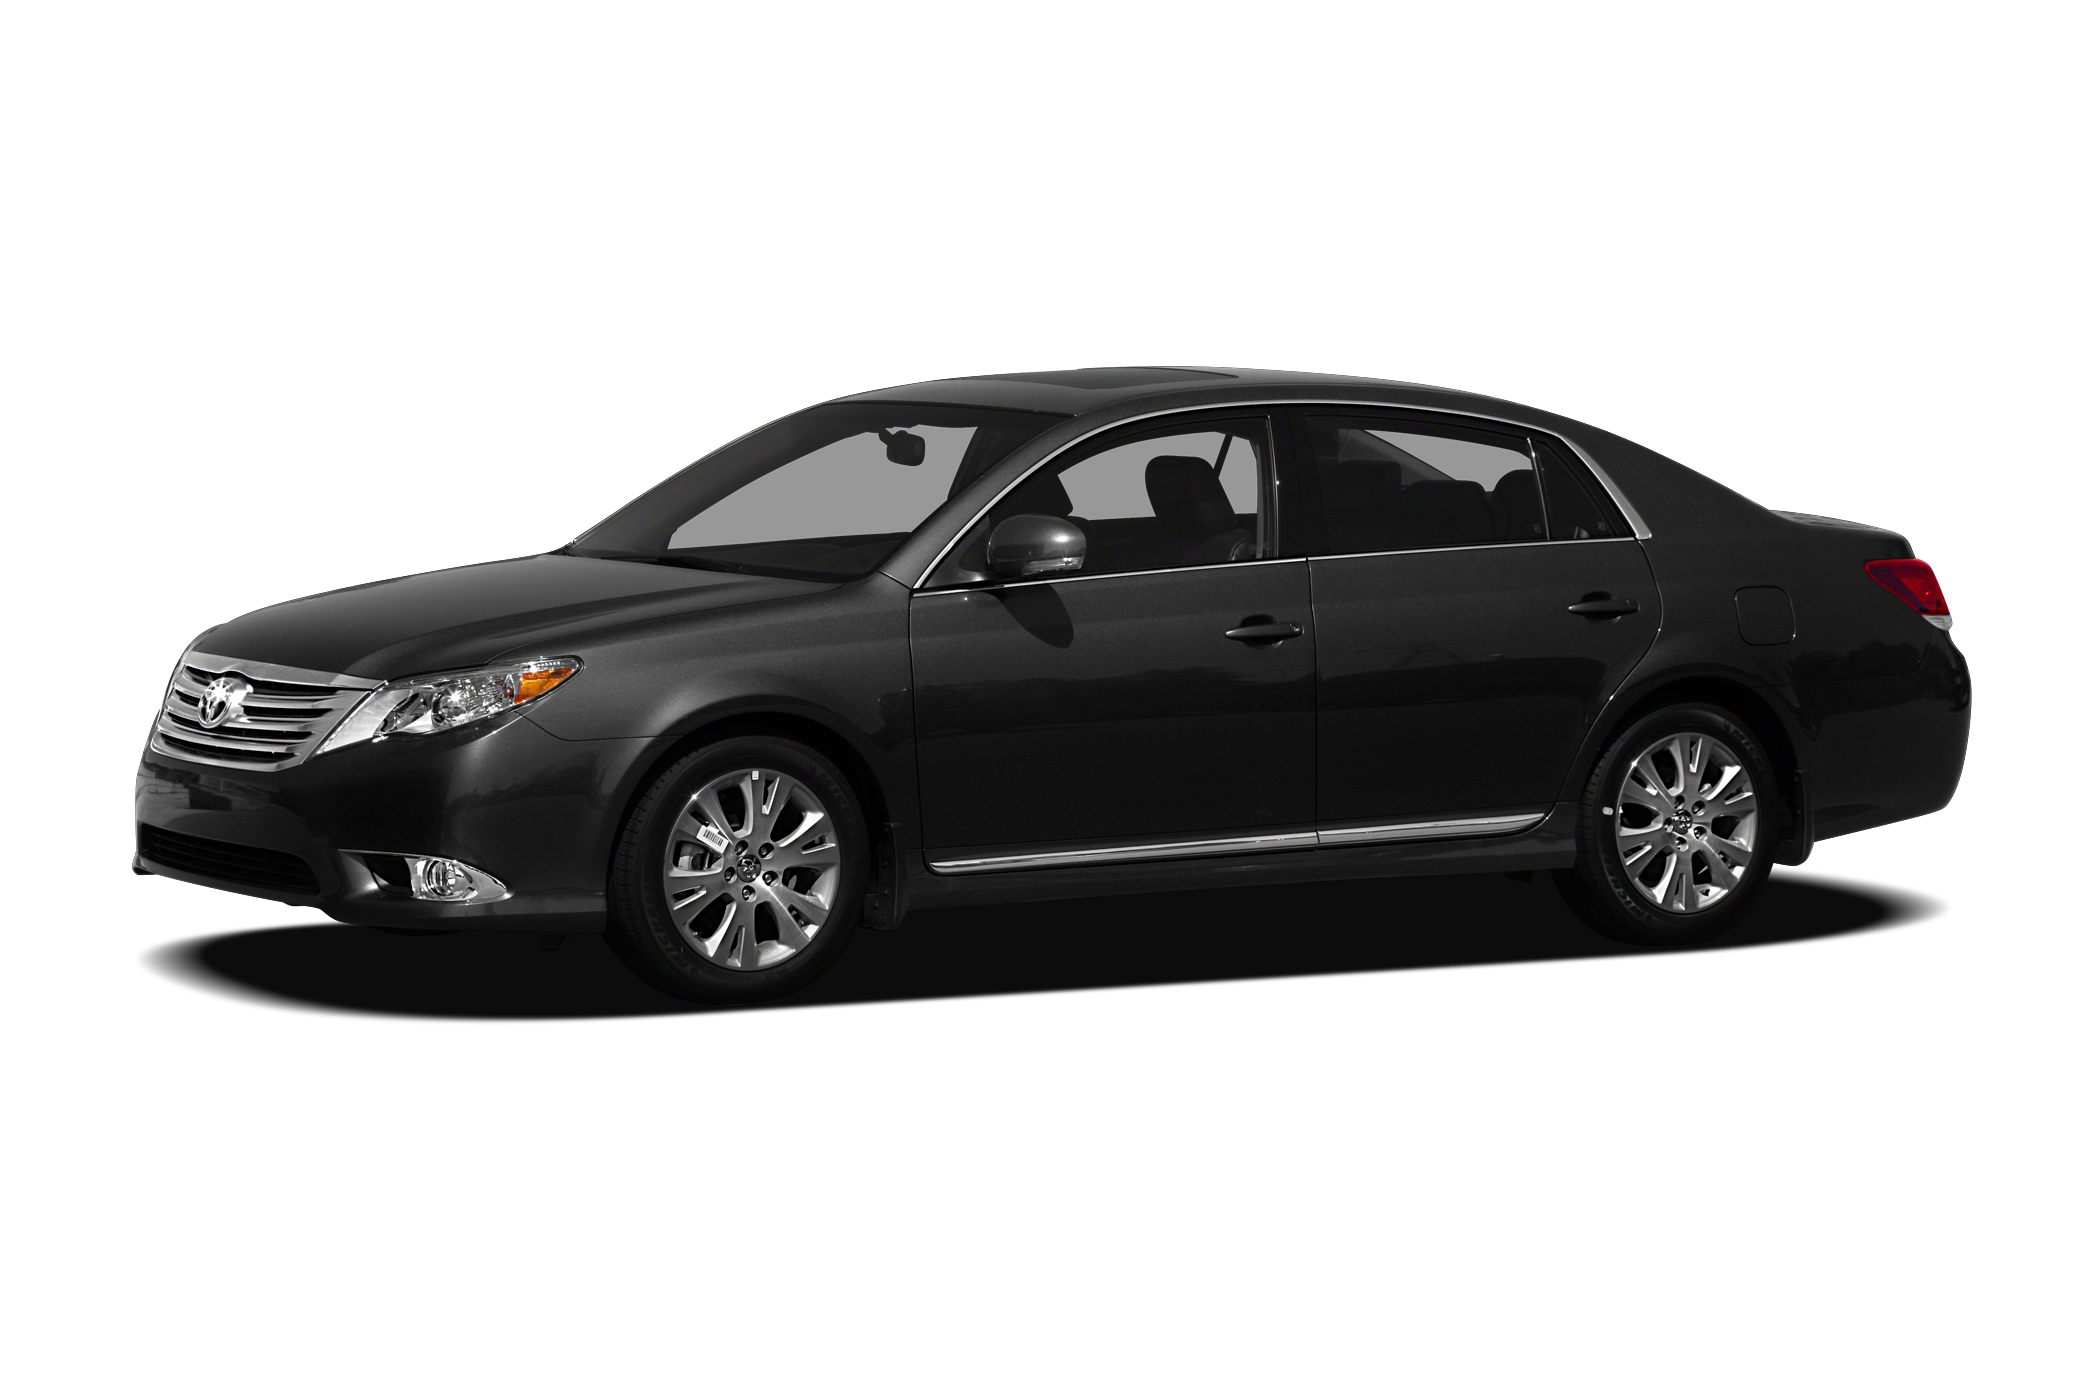 2011 Toyota Avalon Limited CARFAX 1-Owner EPA 29 MPG Hwy20 MPG City 700 below Kelley Blue Boo